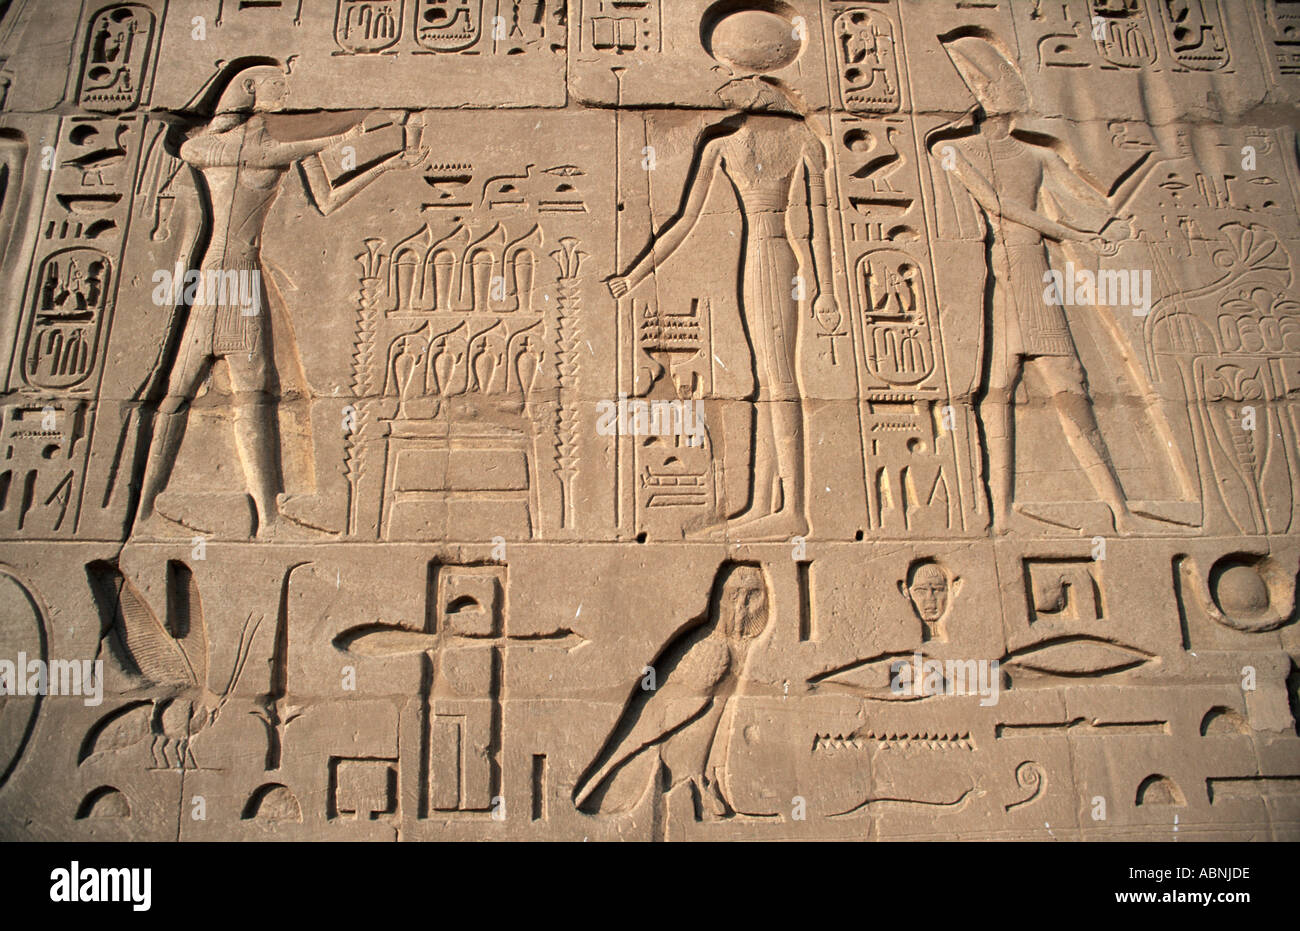 Detail of hieroglyphic carvings in bas relief on walls at temple of Karnak beside the sacred lake Upper Egypt - Stock Image